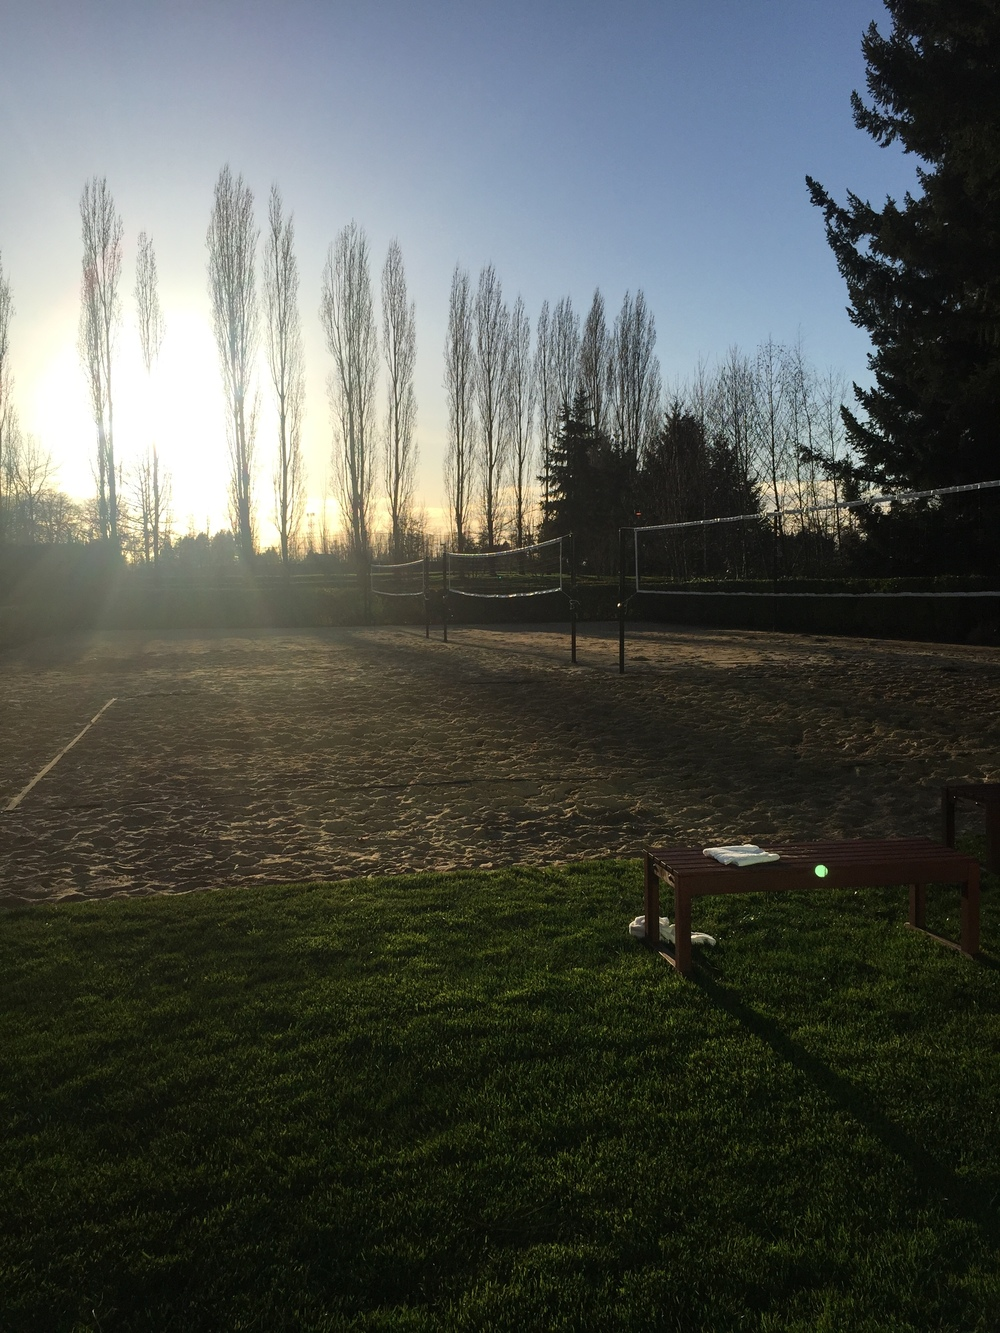 The volleyball courts at Nike Headquarters in Beaverton, OR